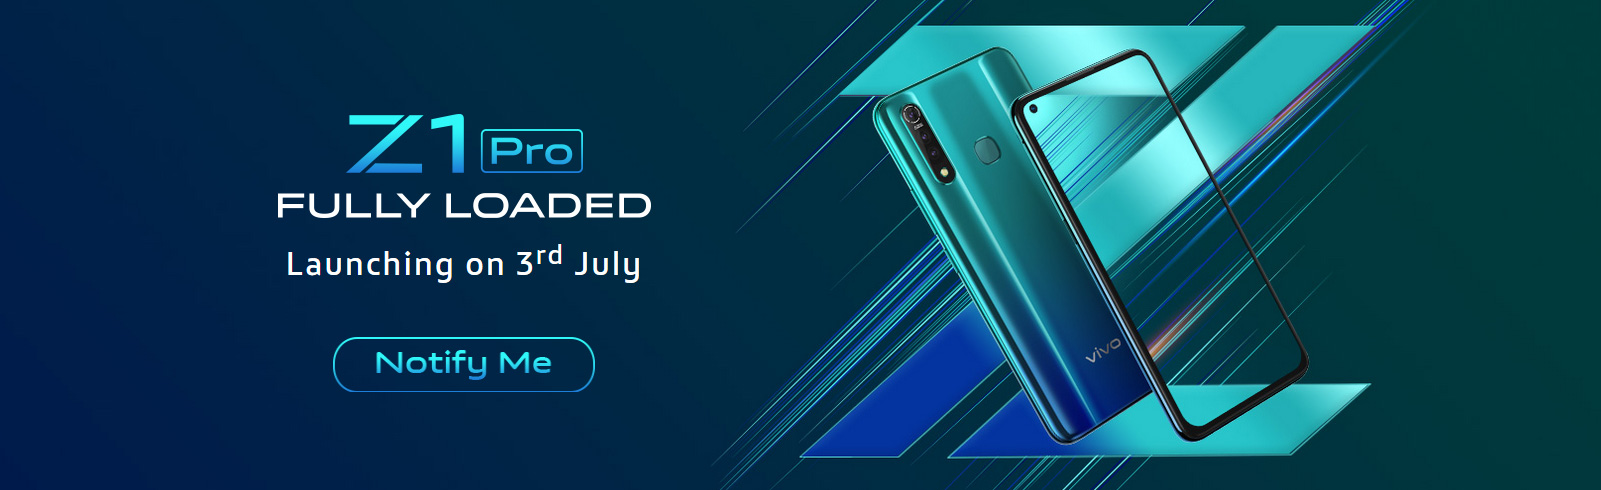 Vivo India has listed a launch page for the Vivo Z1 Pro, to be unveiled on July 3rd